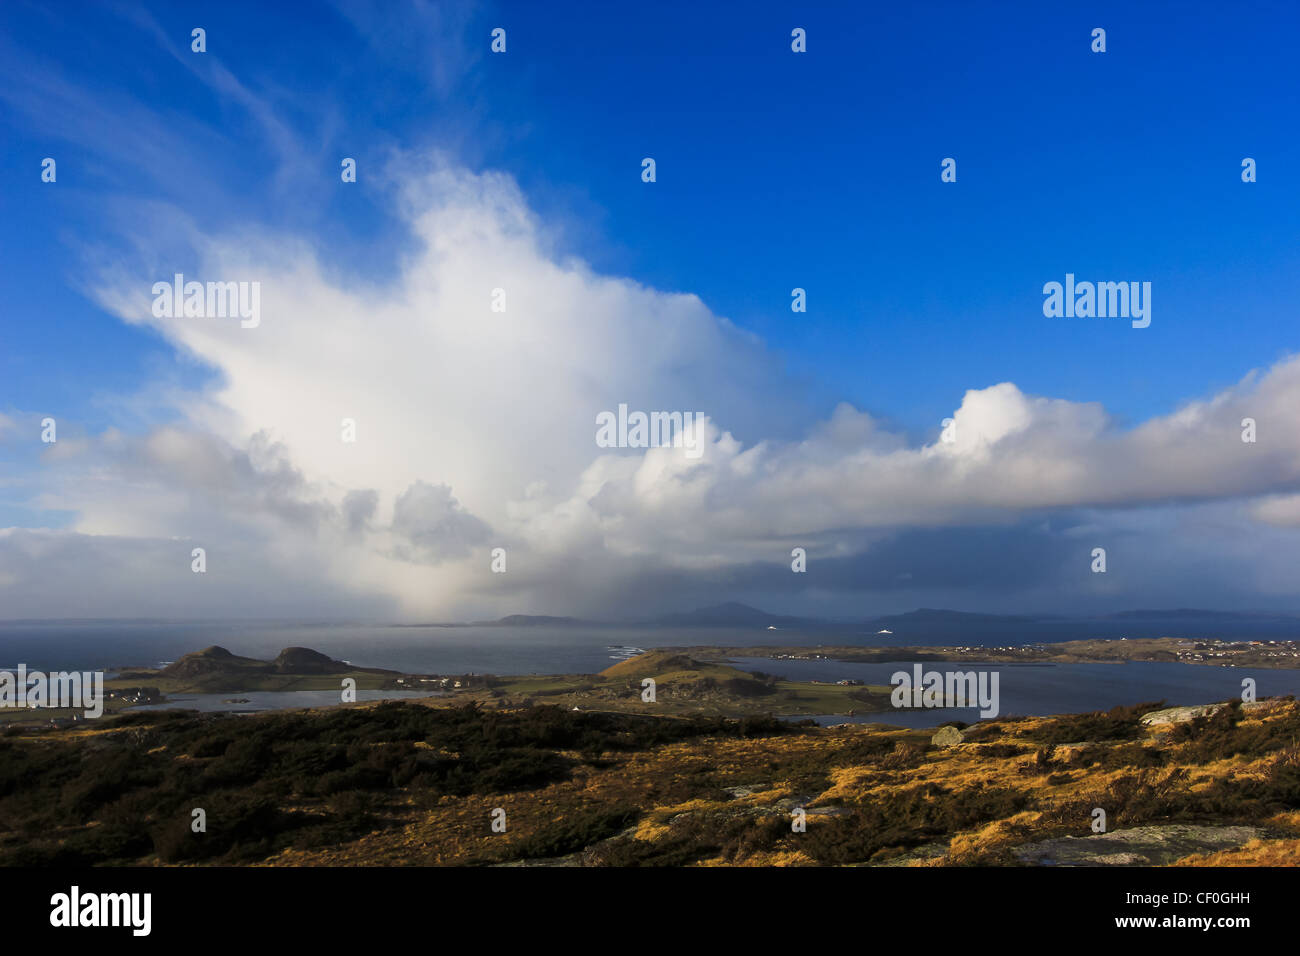 Rainclouds over an Island, seen from the island of Klosteroy, close to Stavanger, Norway - Stock Image